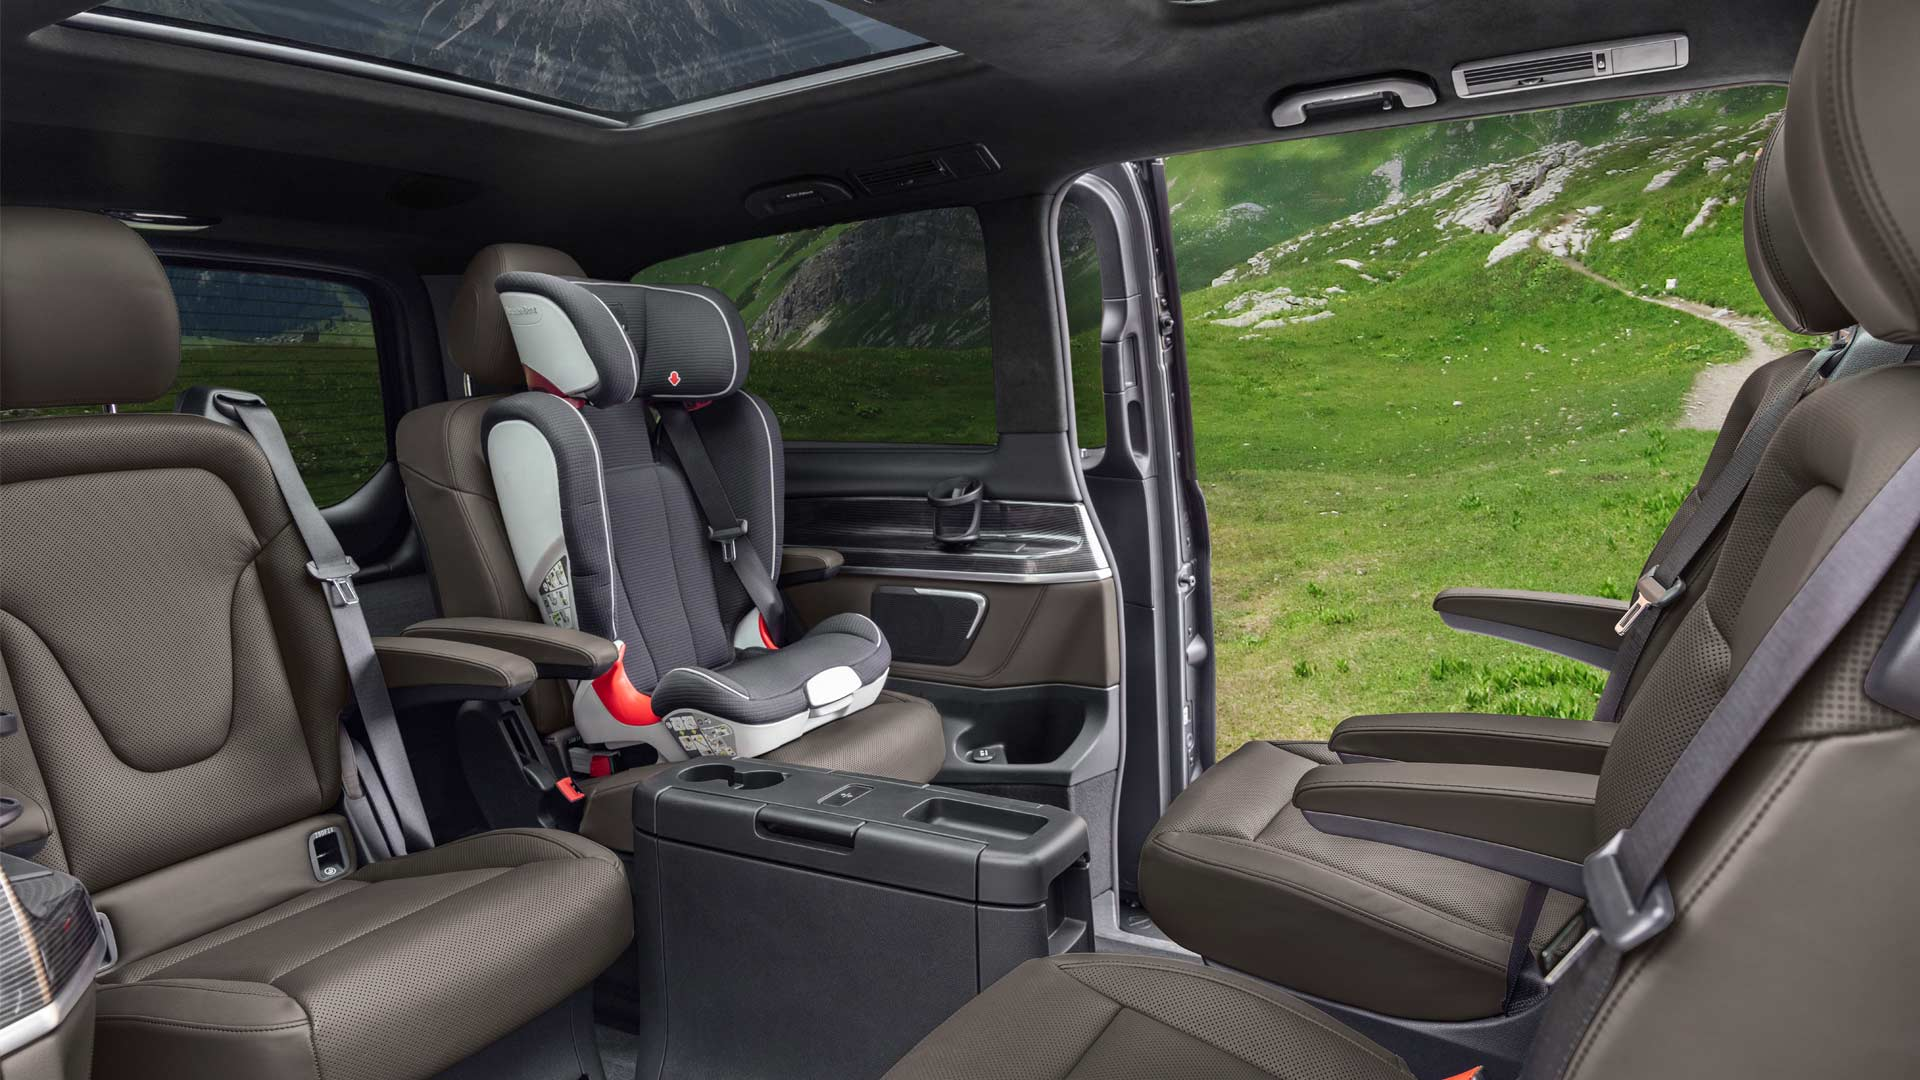 2019-Mercedes-Benz-V-Class-facelift-Interior Tartufo Nappa leather_3